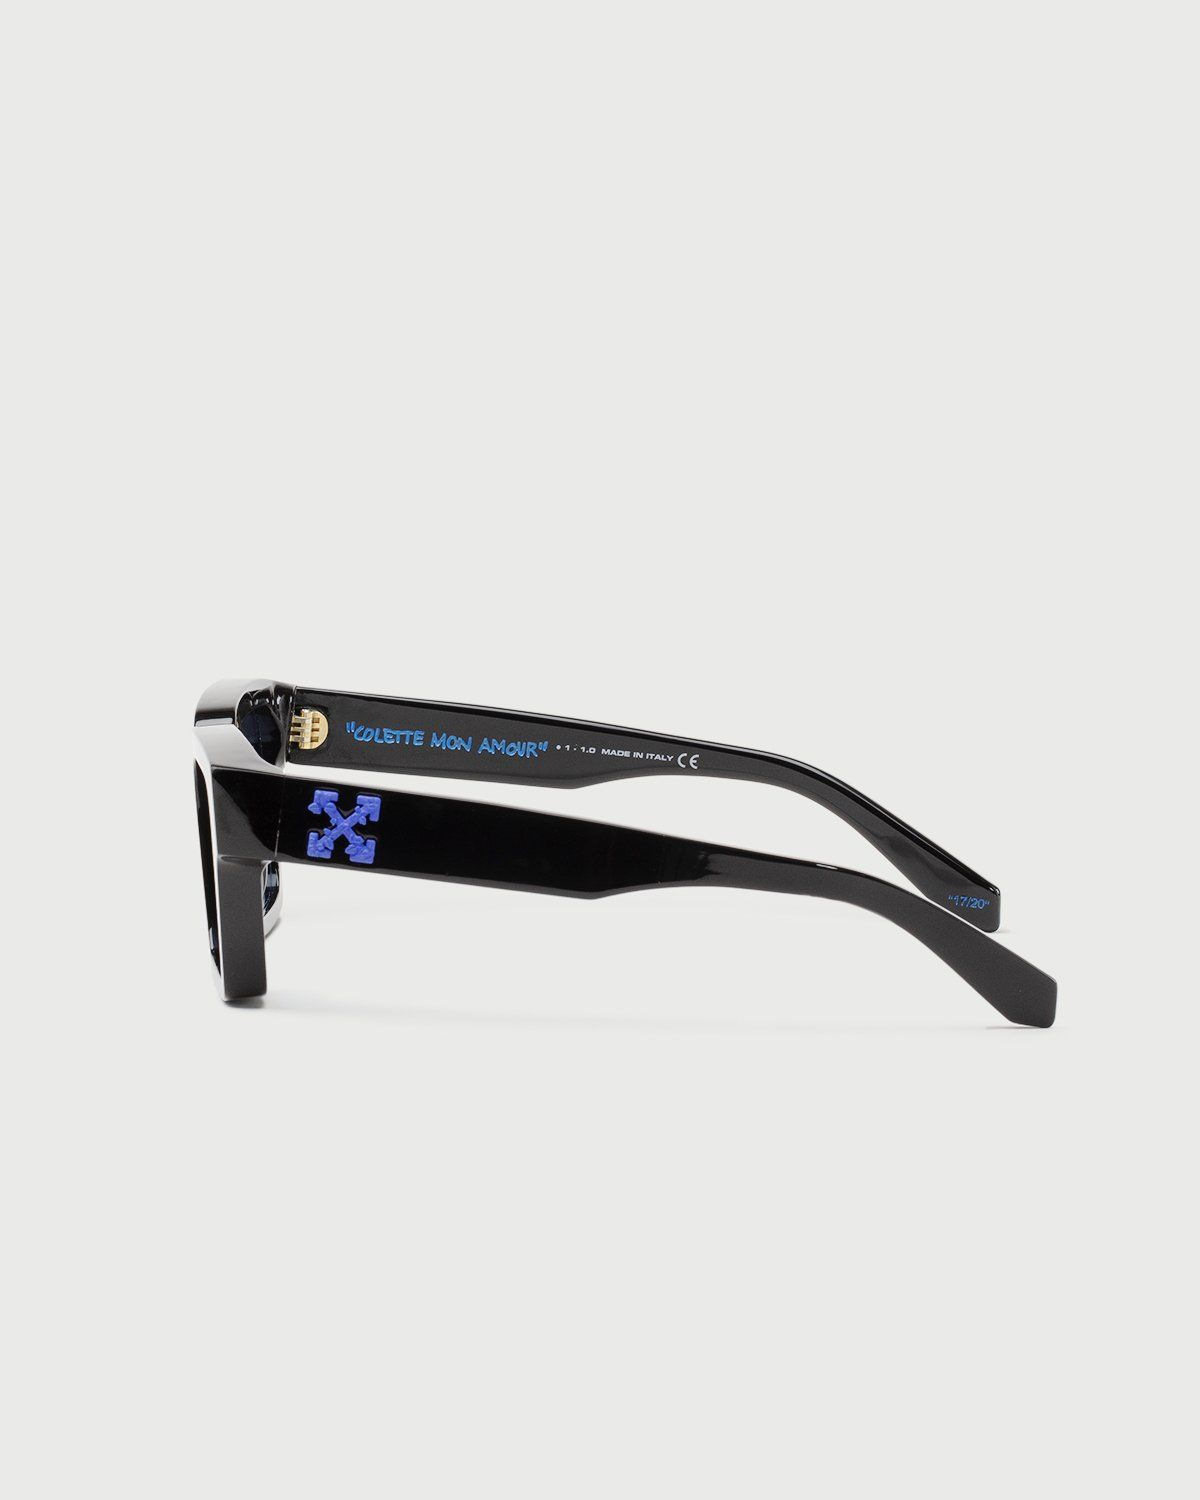 Off-White x colette Mon Amour - Sunglasses Black - Image 3